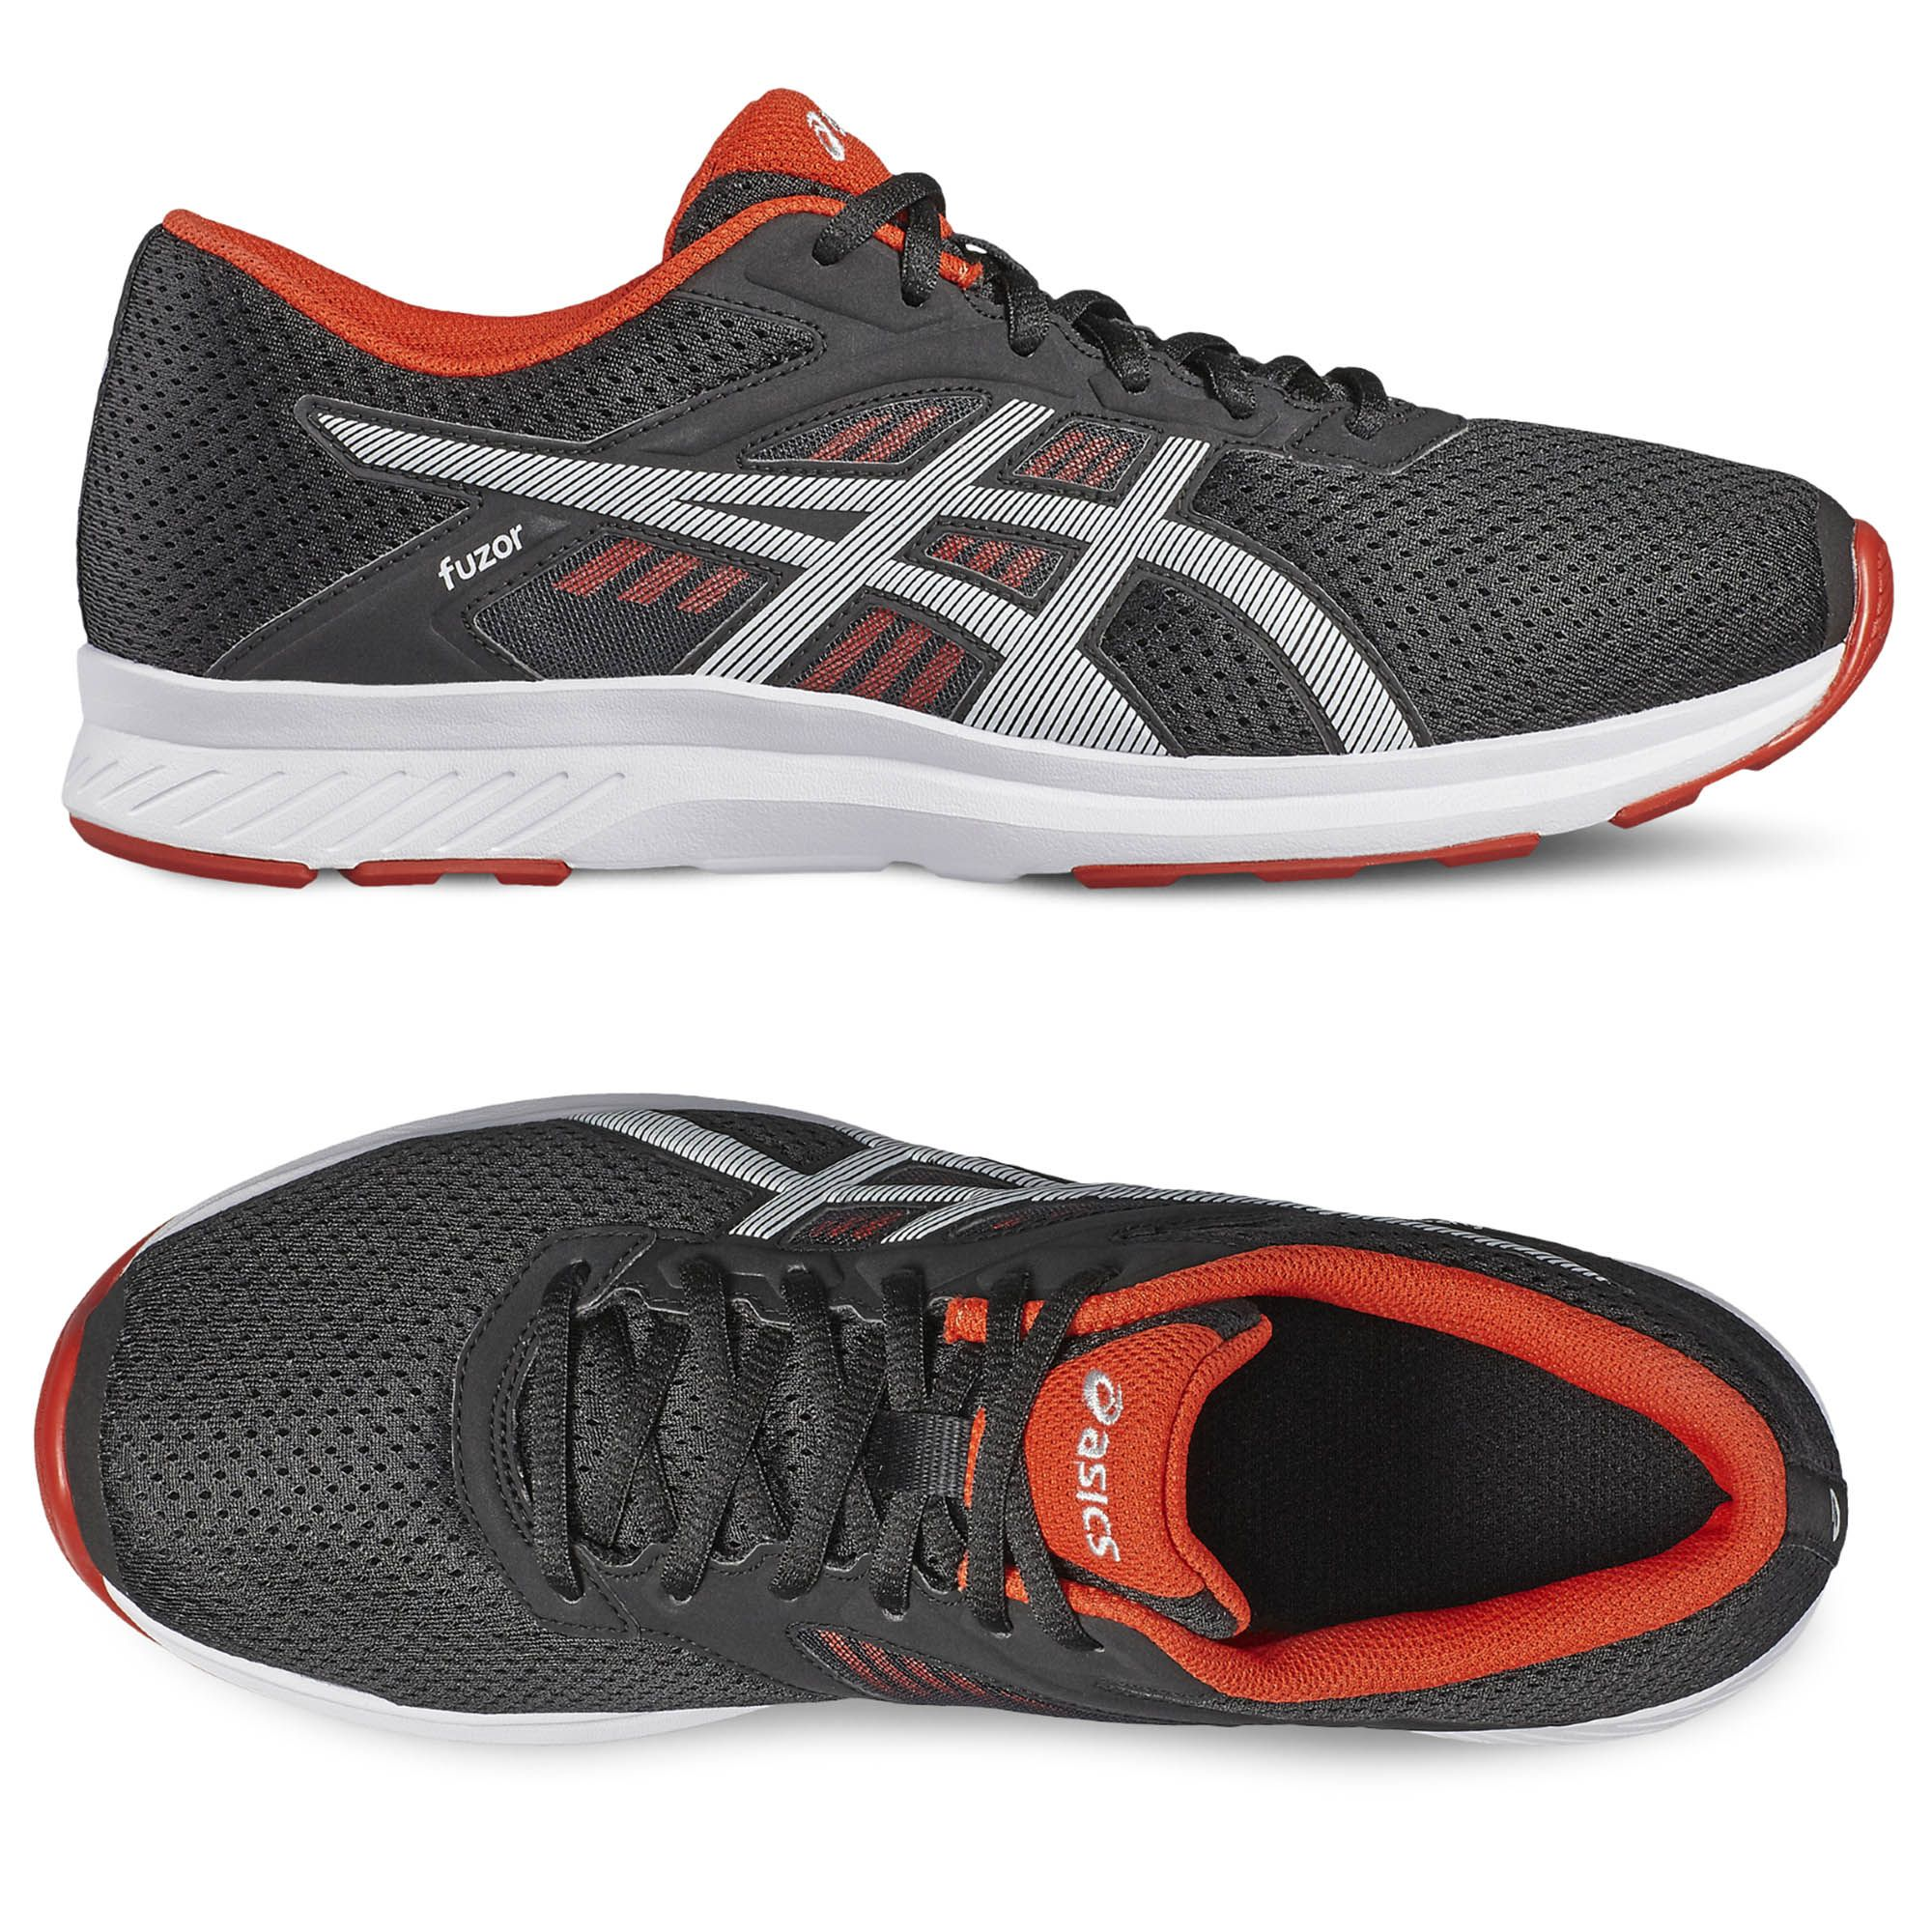 Asics Flexible Running Shoes